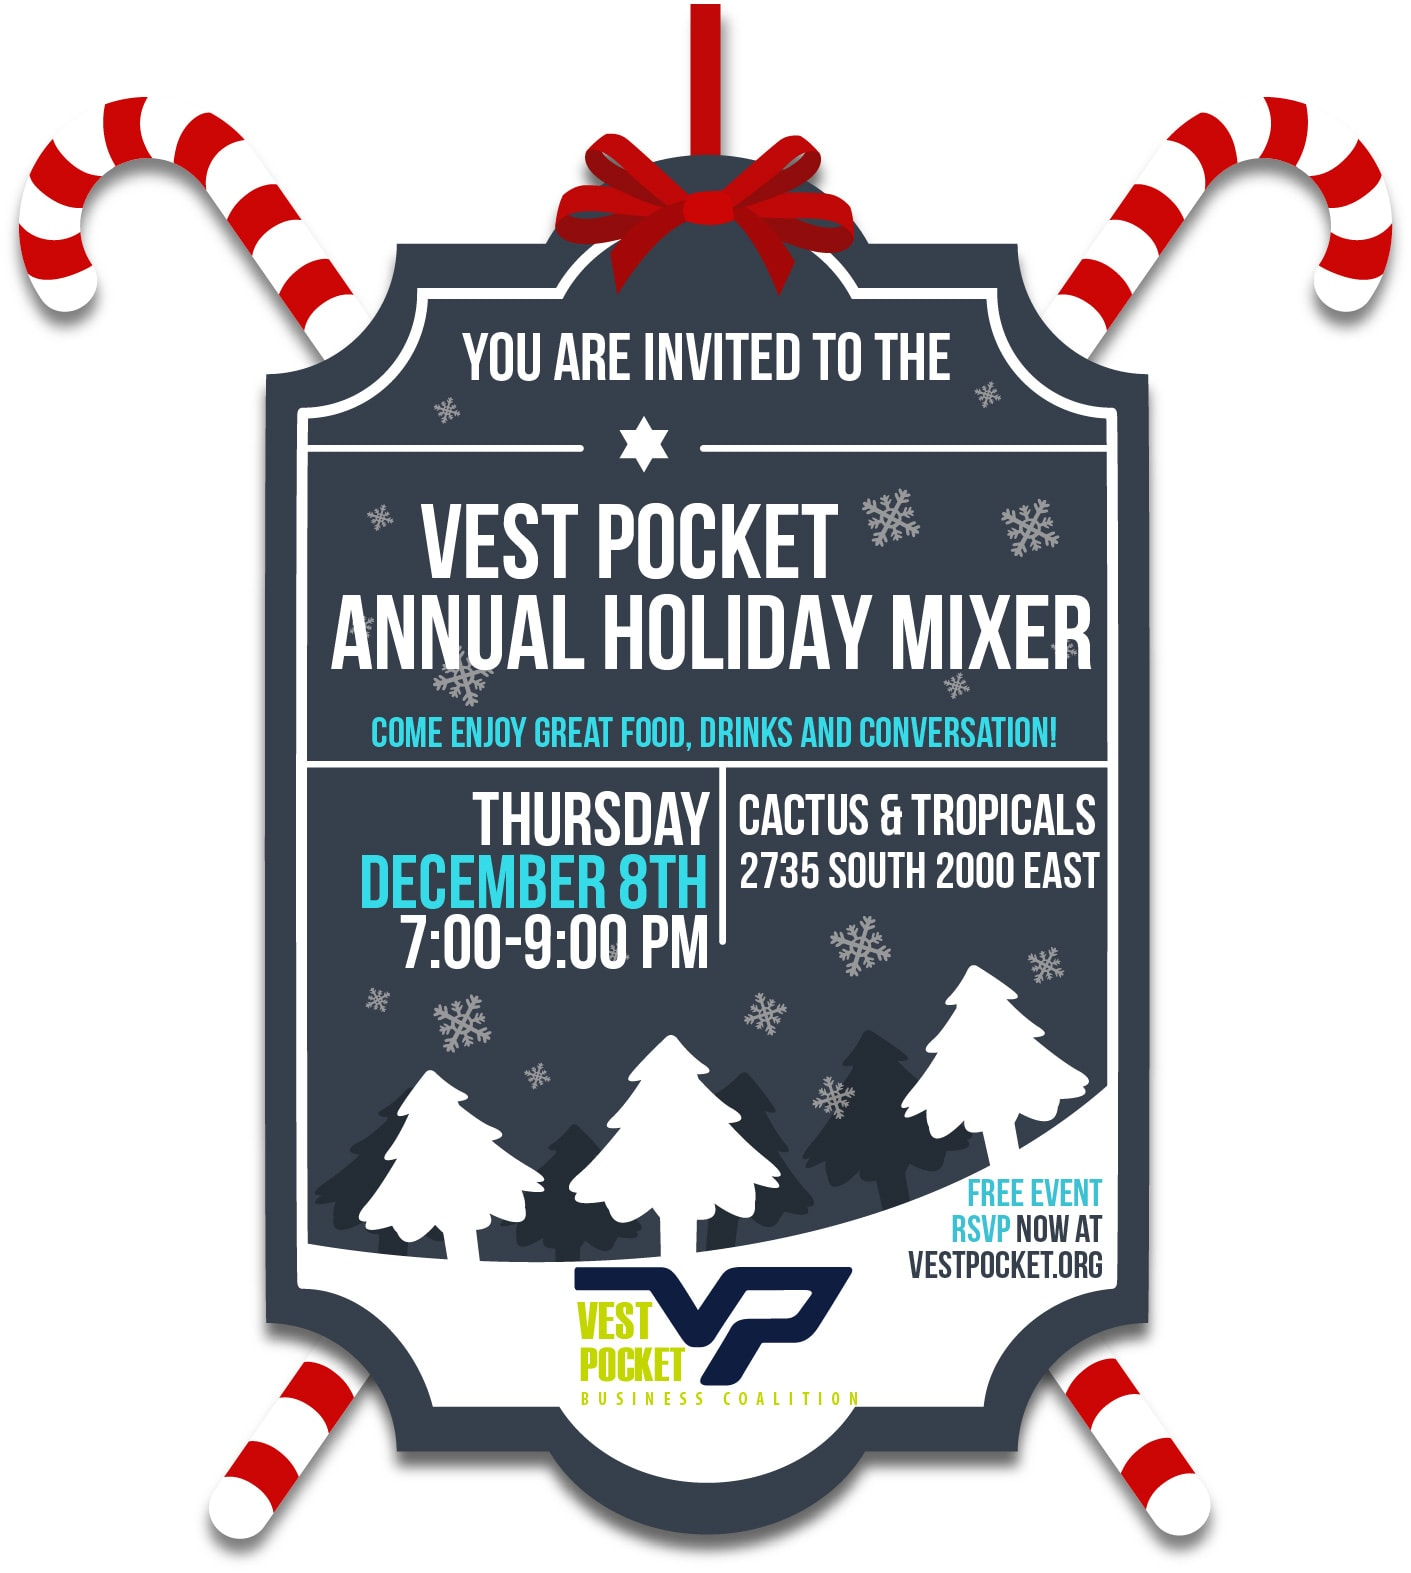 Vest Pocket Annual Holiday Mixer